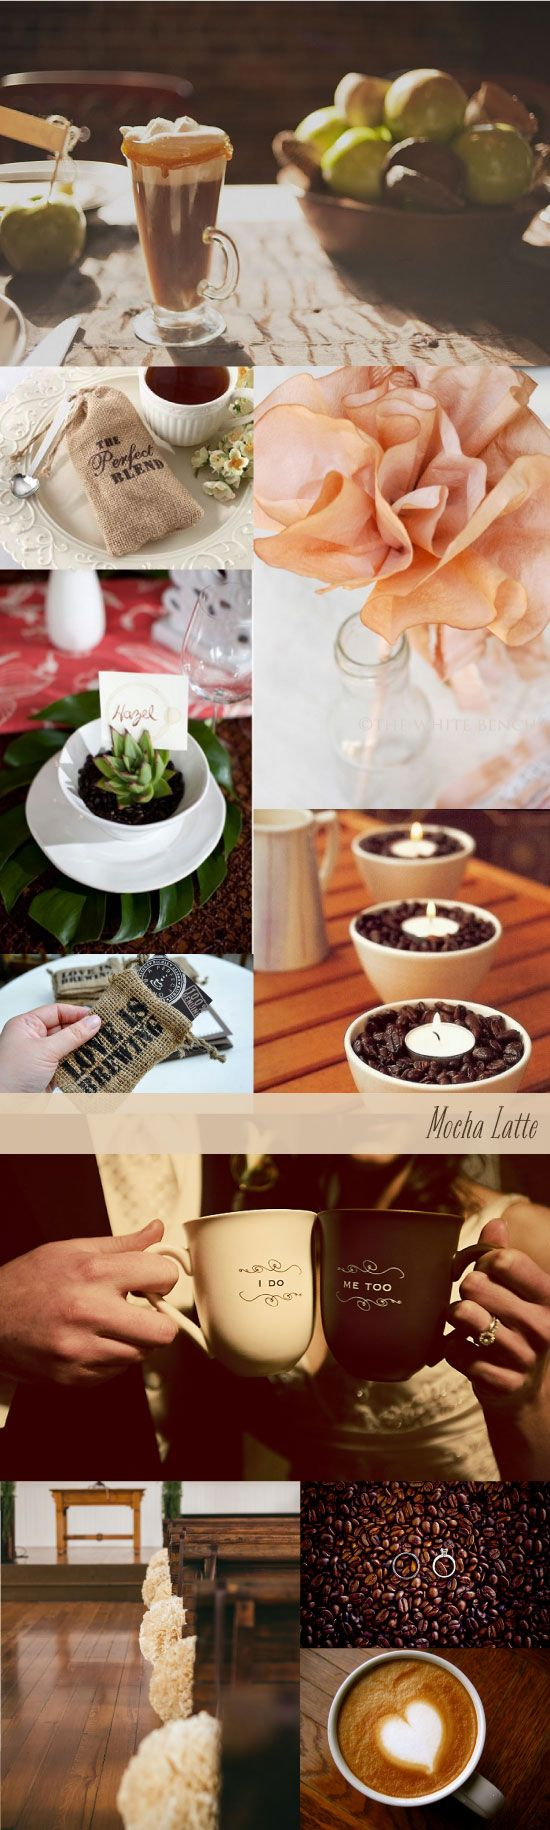 Coffee mug wedding favors - This Coffee Latte Theme Allows For The Use Of Beautiful Brown And Cream Hues Cute Bride And Groom Coffee Mugs And The Chance To Have A Delicious Coffee